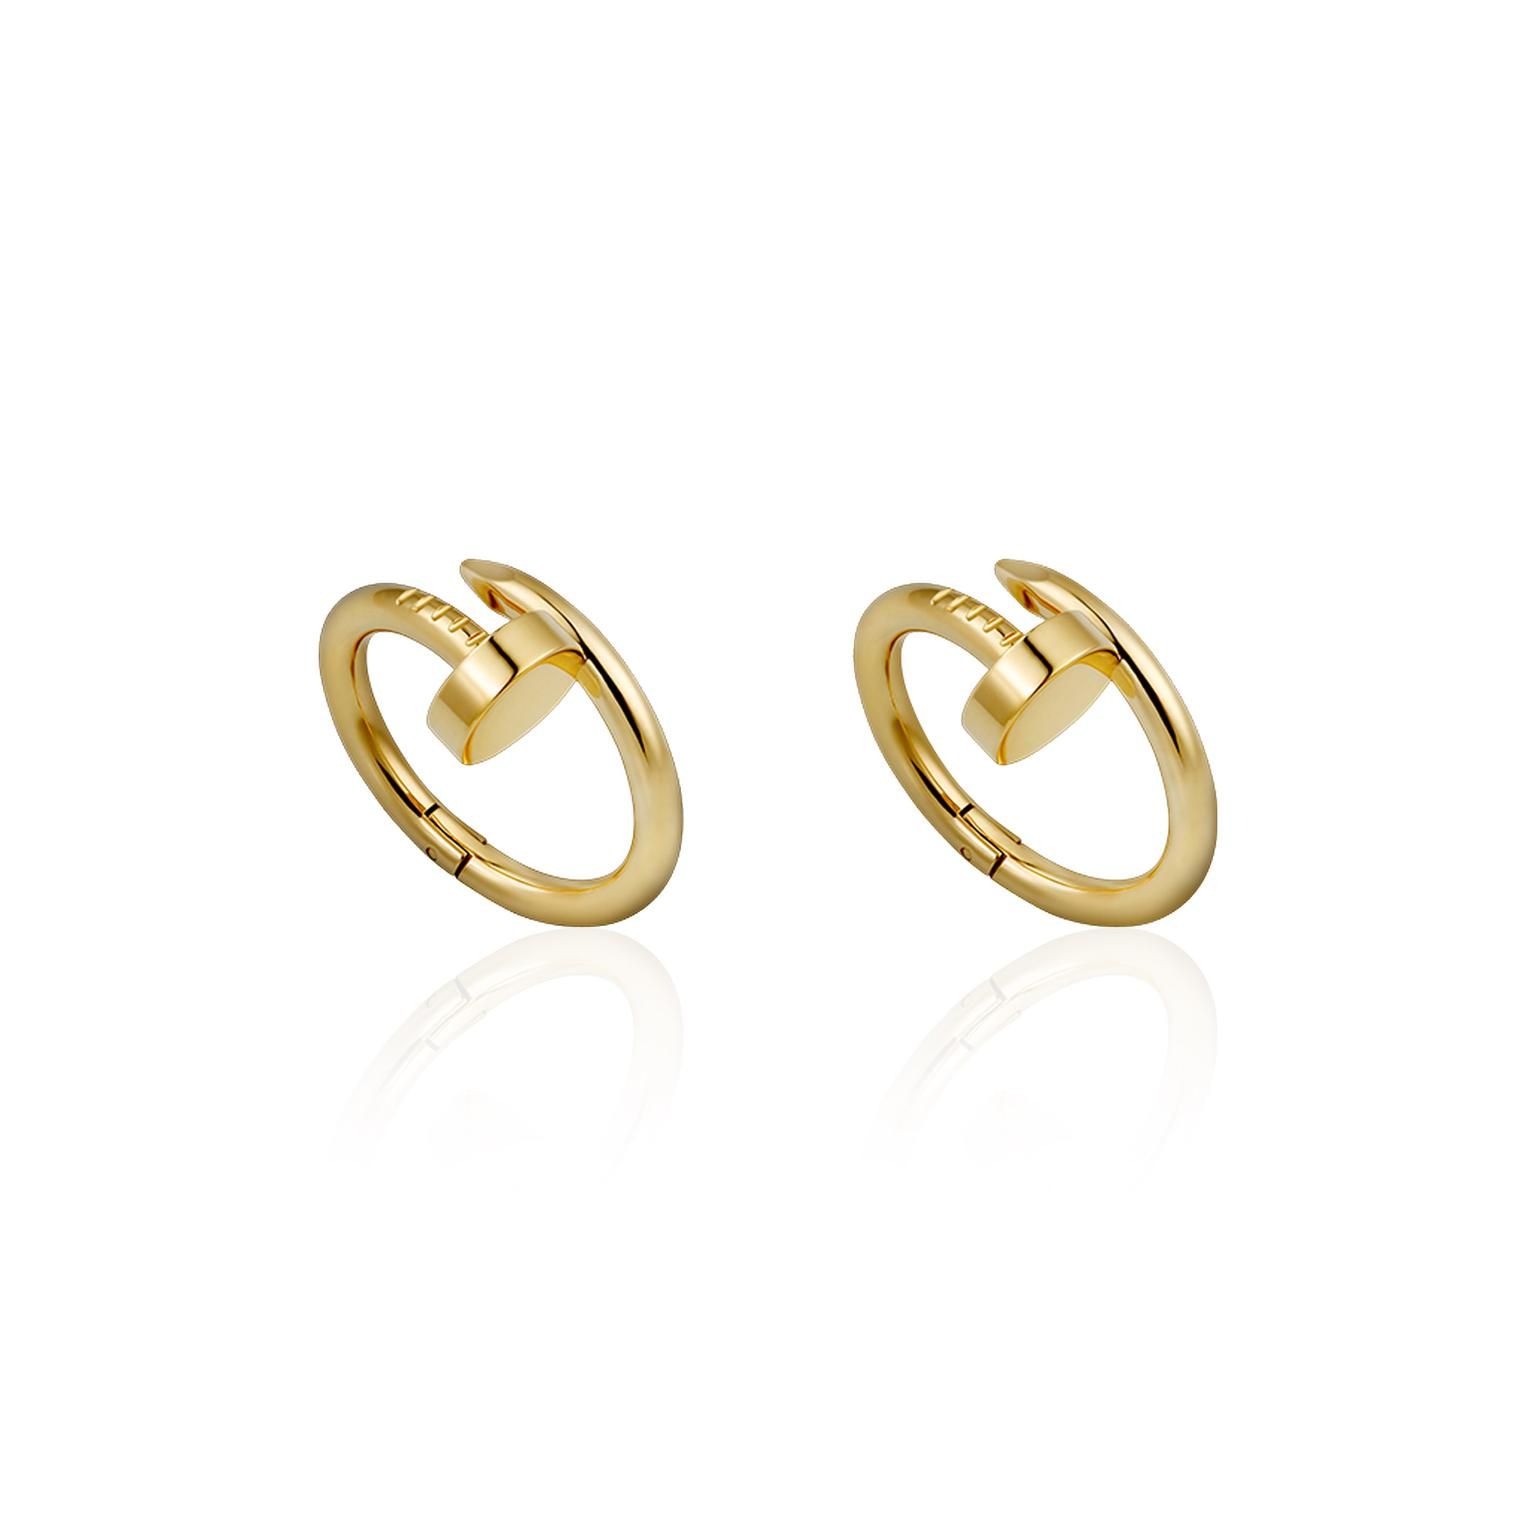 Cartier-Juste-un-Clou-Gold-Cufflinks-zoom